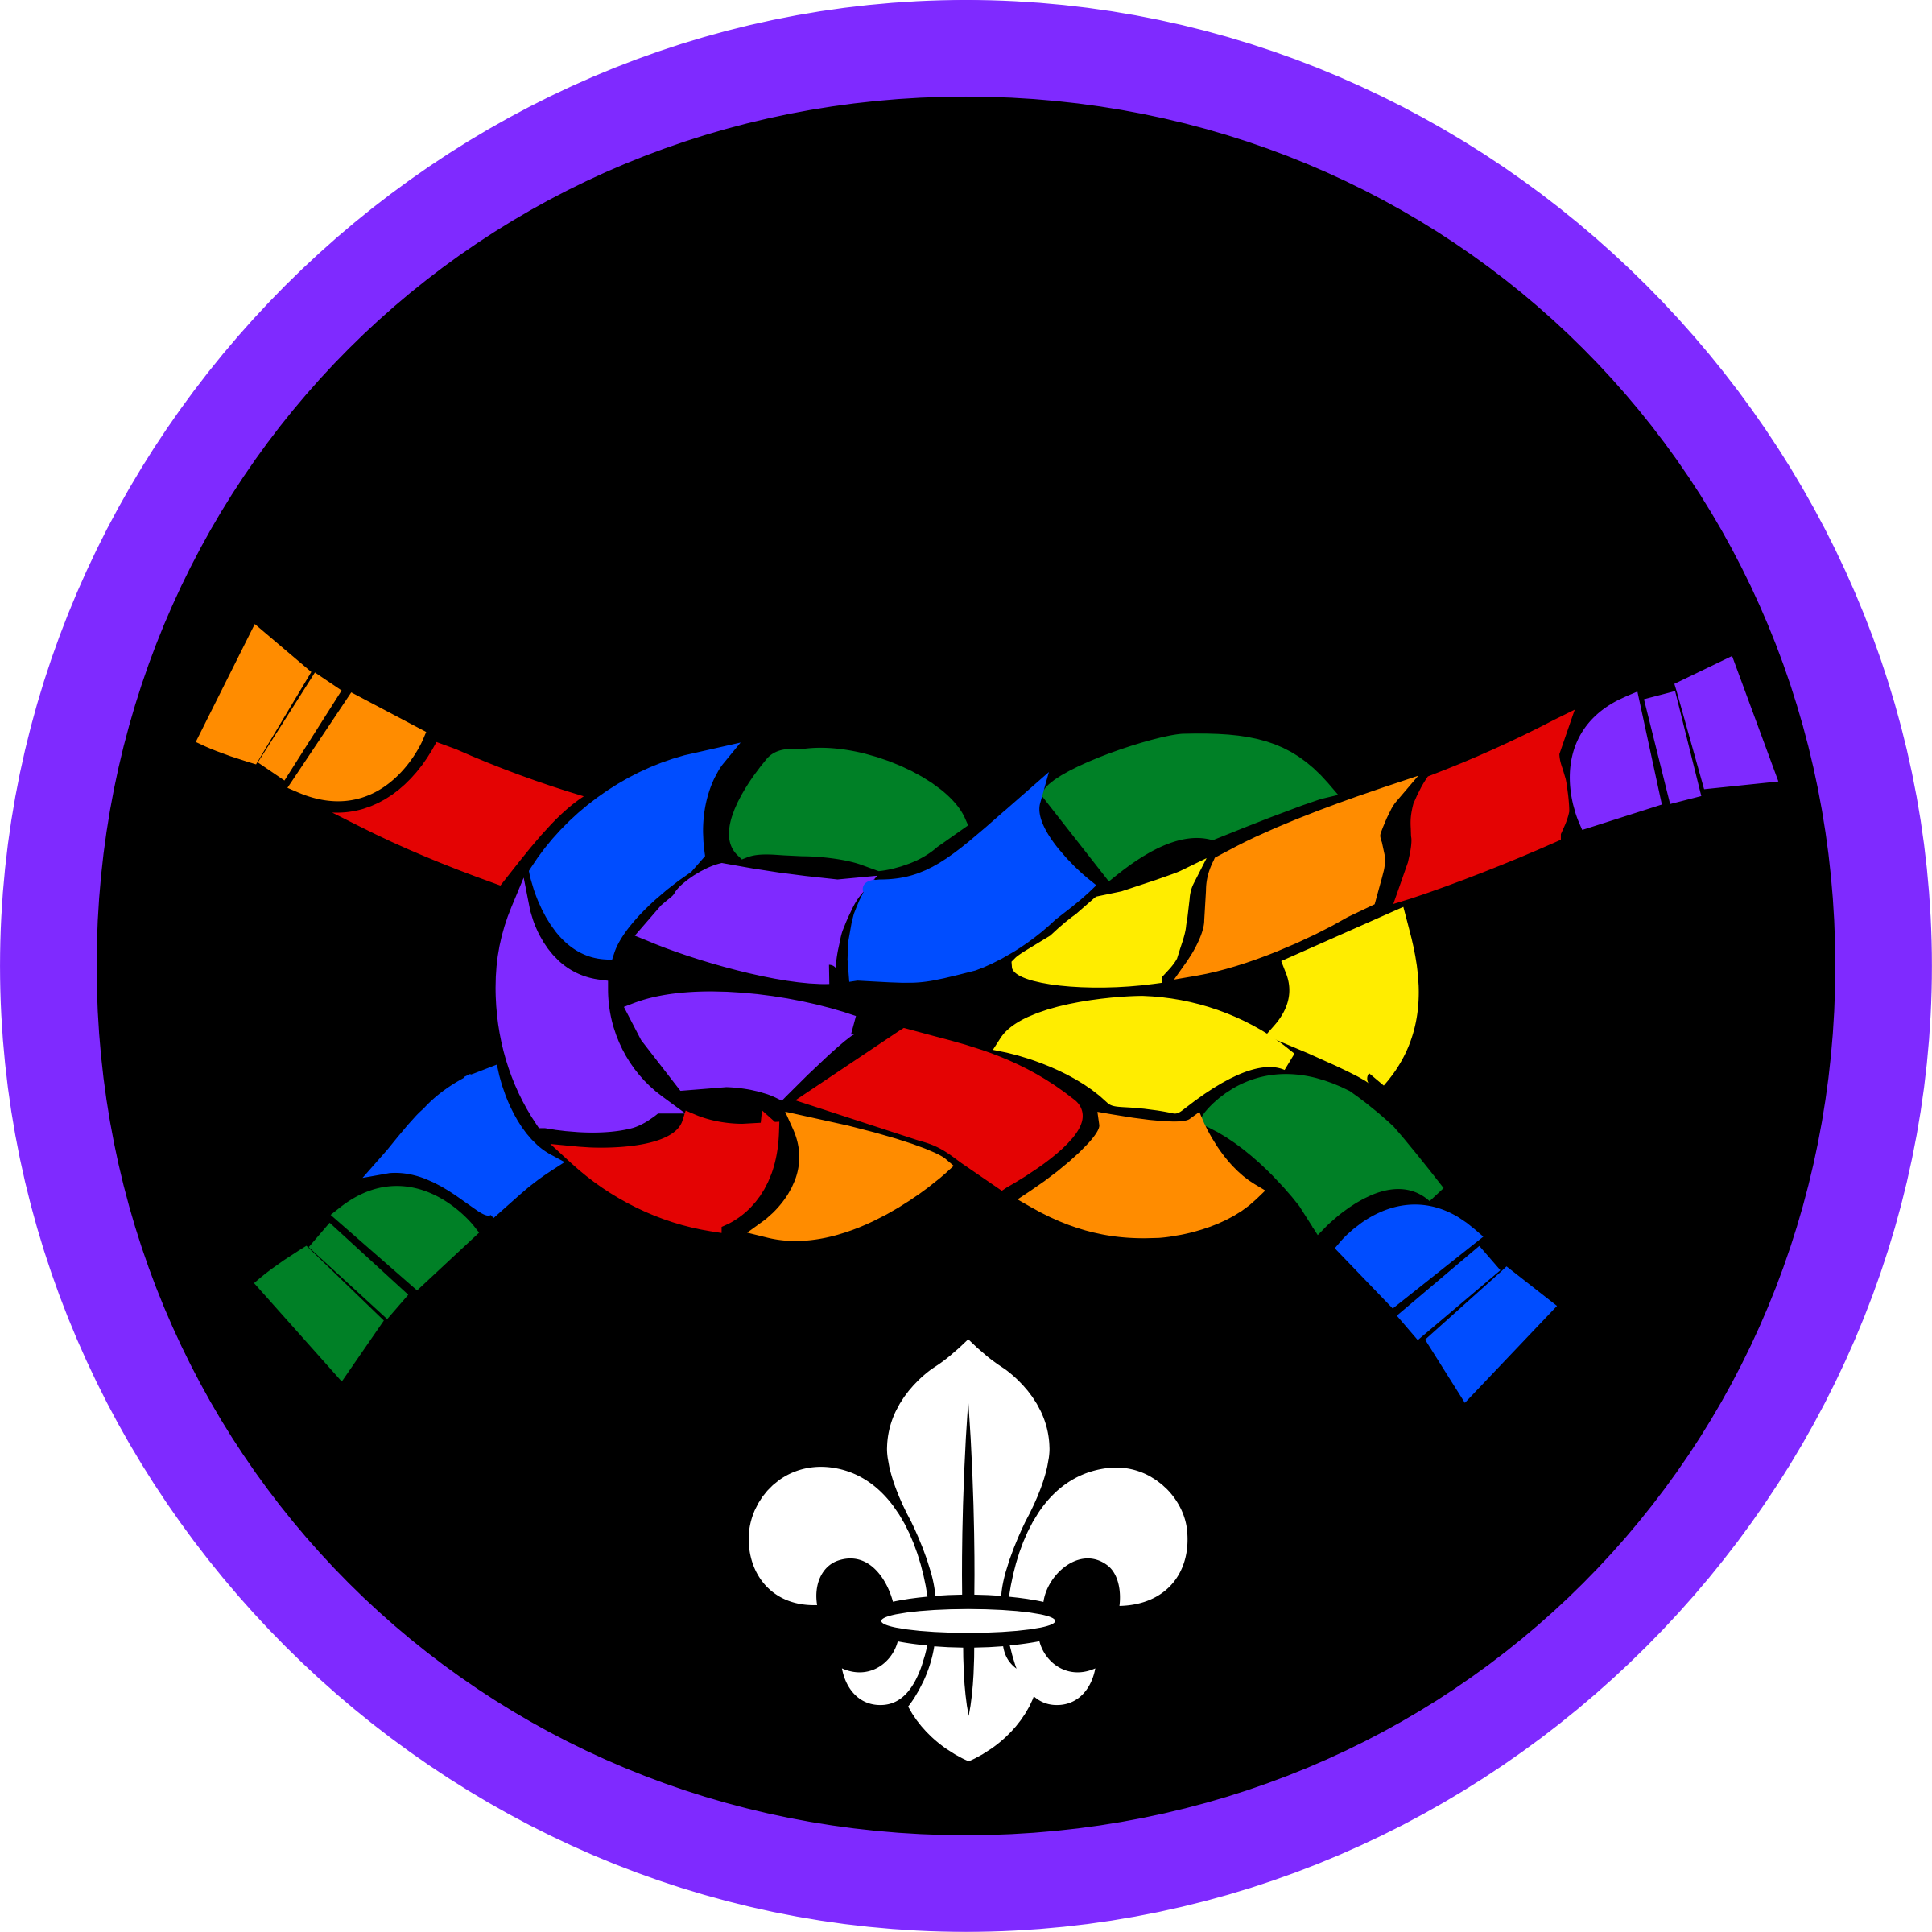 Knot clipart rainbow. Pride challenge merit badge